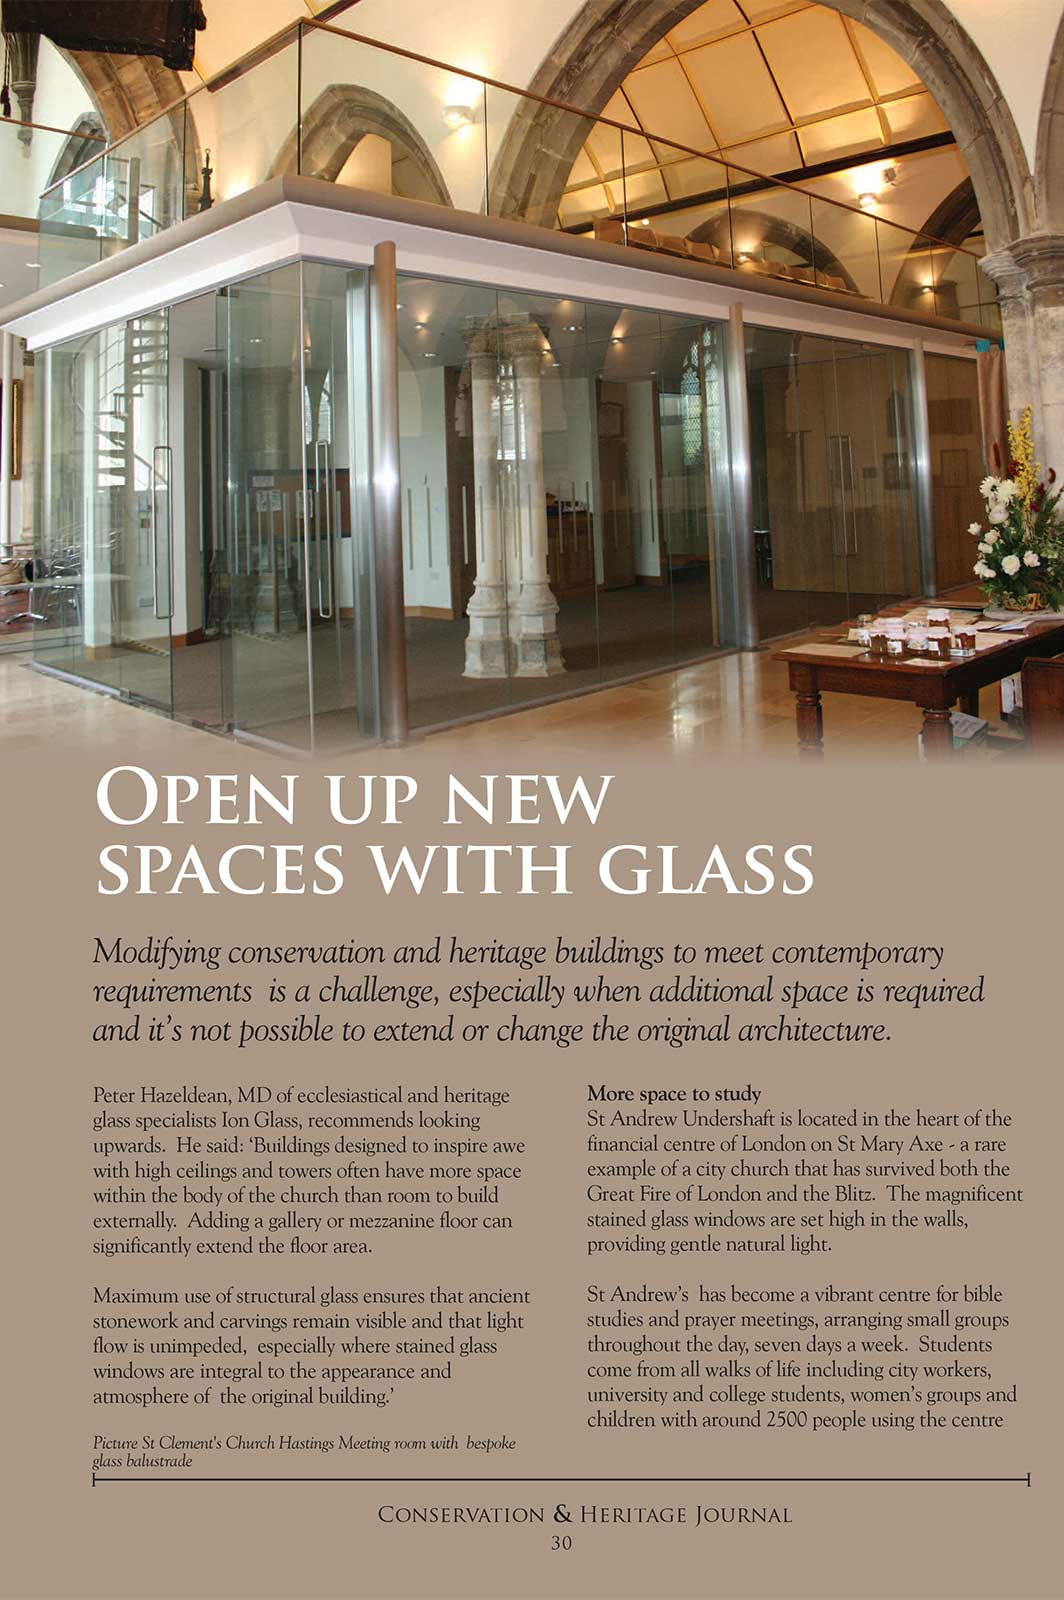 Open Up New Spaces With Glass - Conservation & Heritage Journal